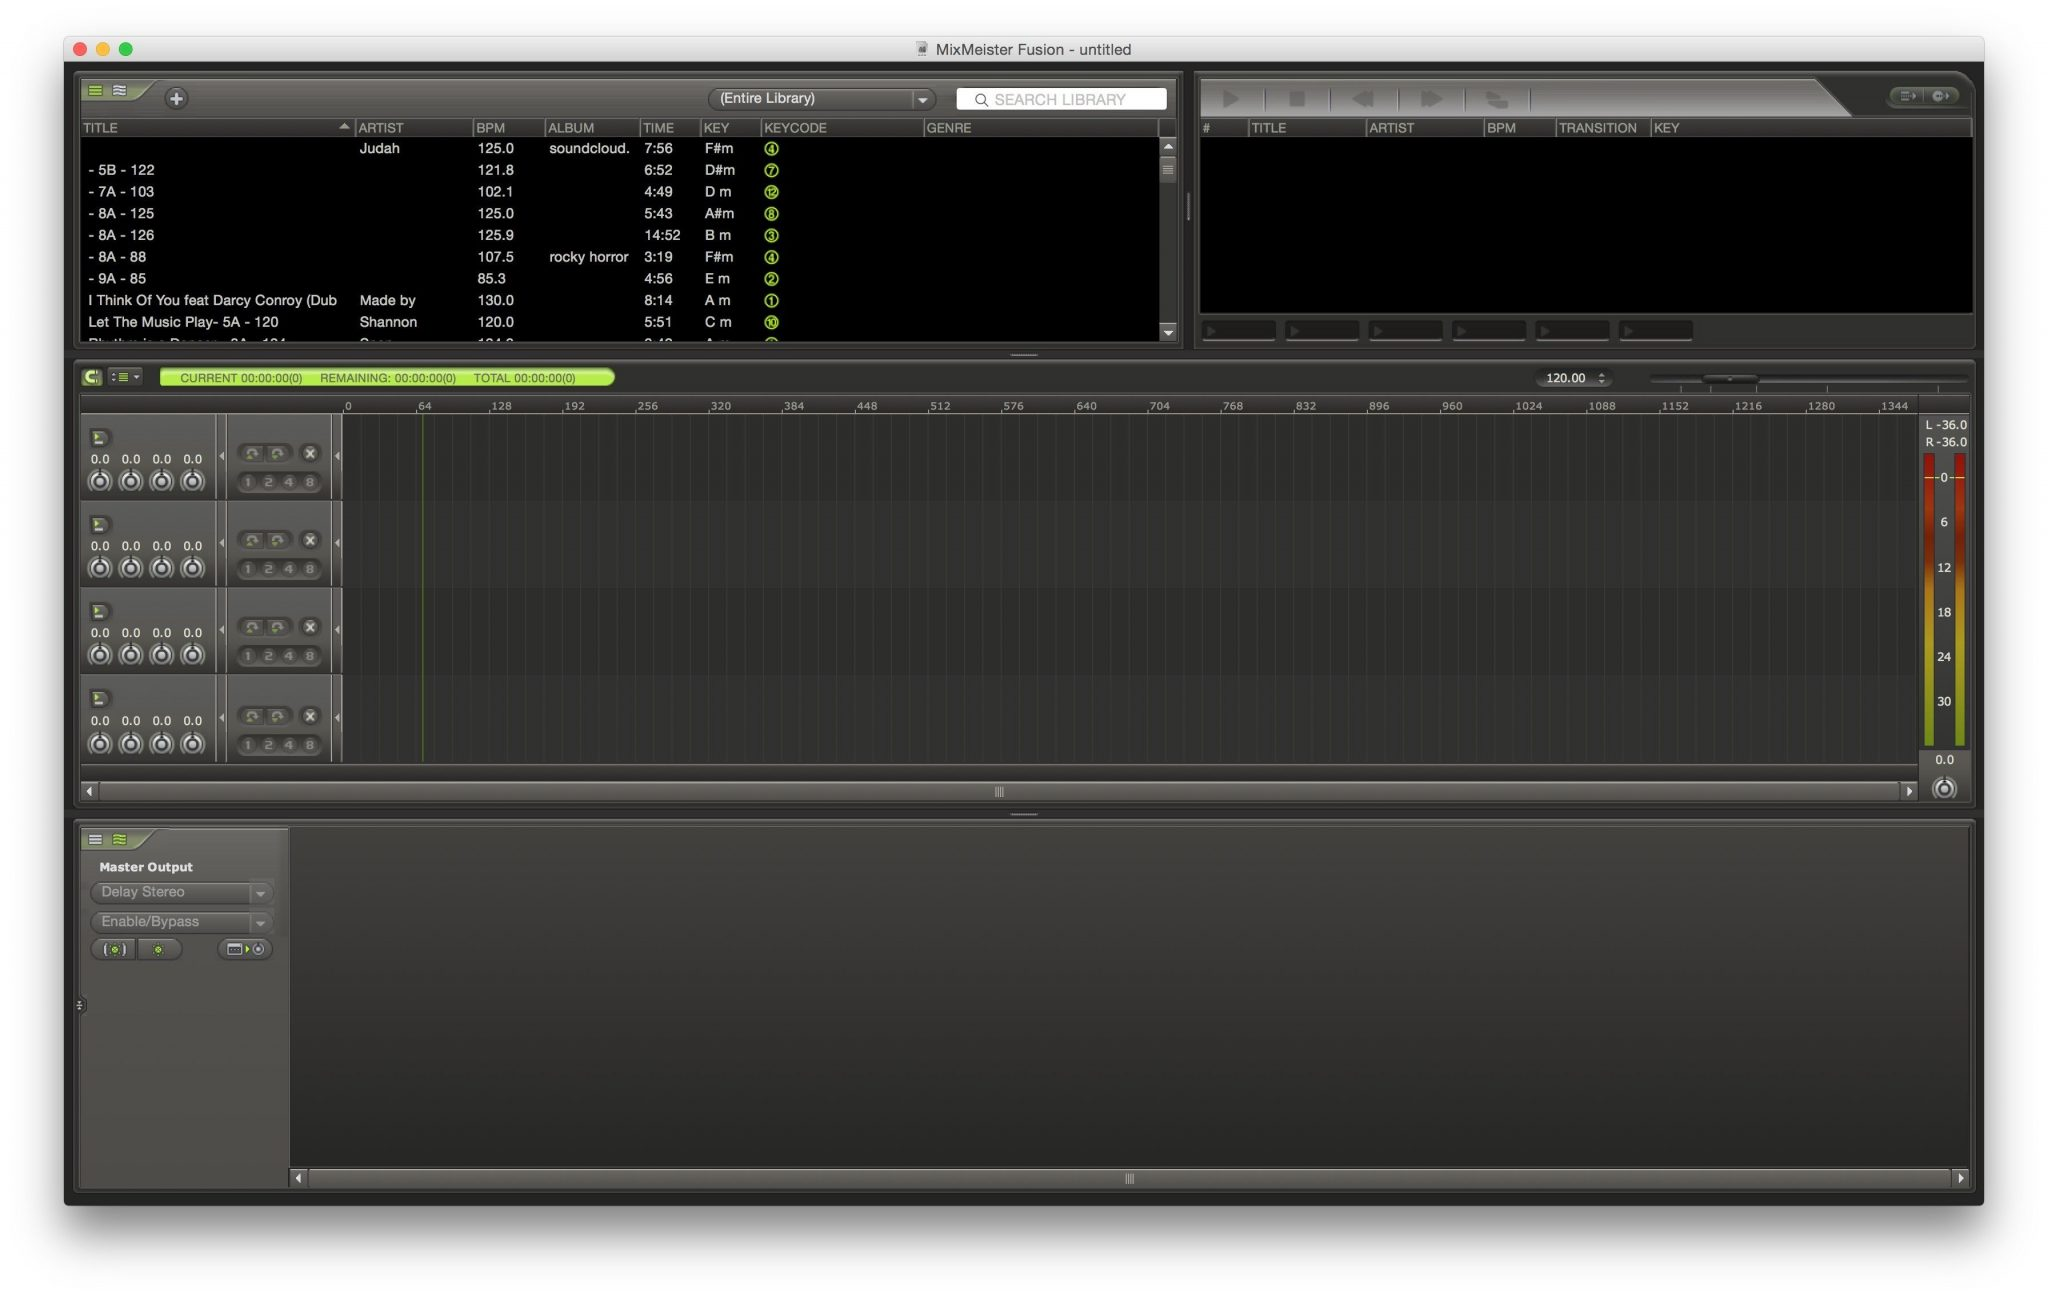 REVIEW: MixMeister Fusion 7 7 performance software   DJWORX